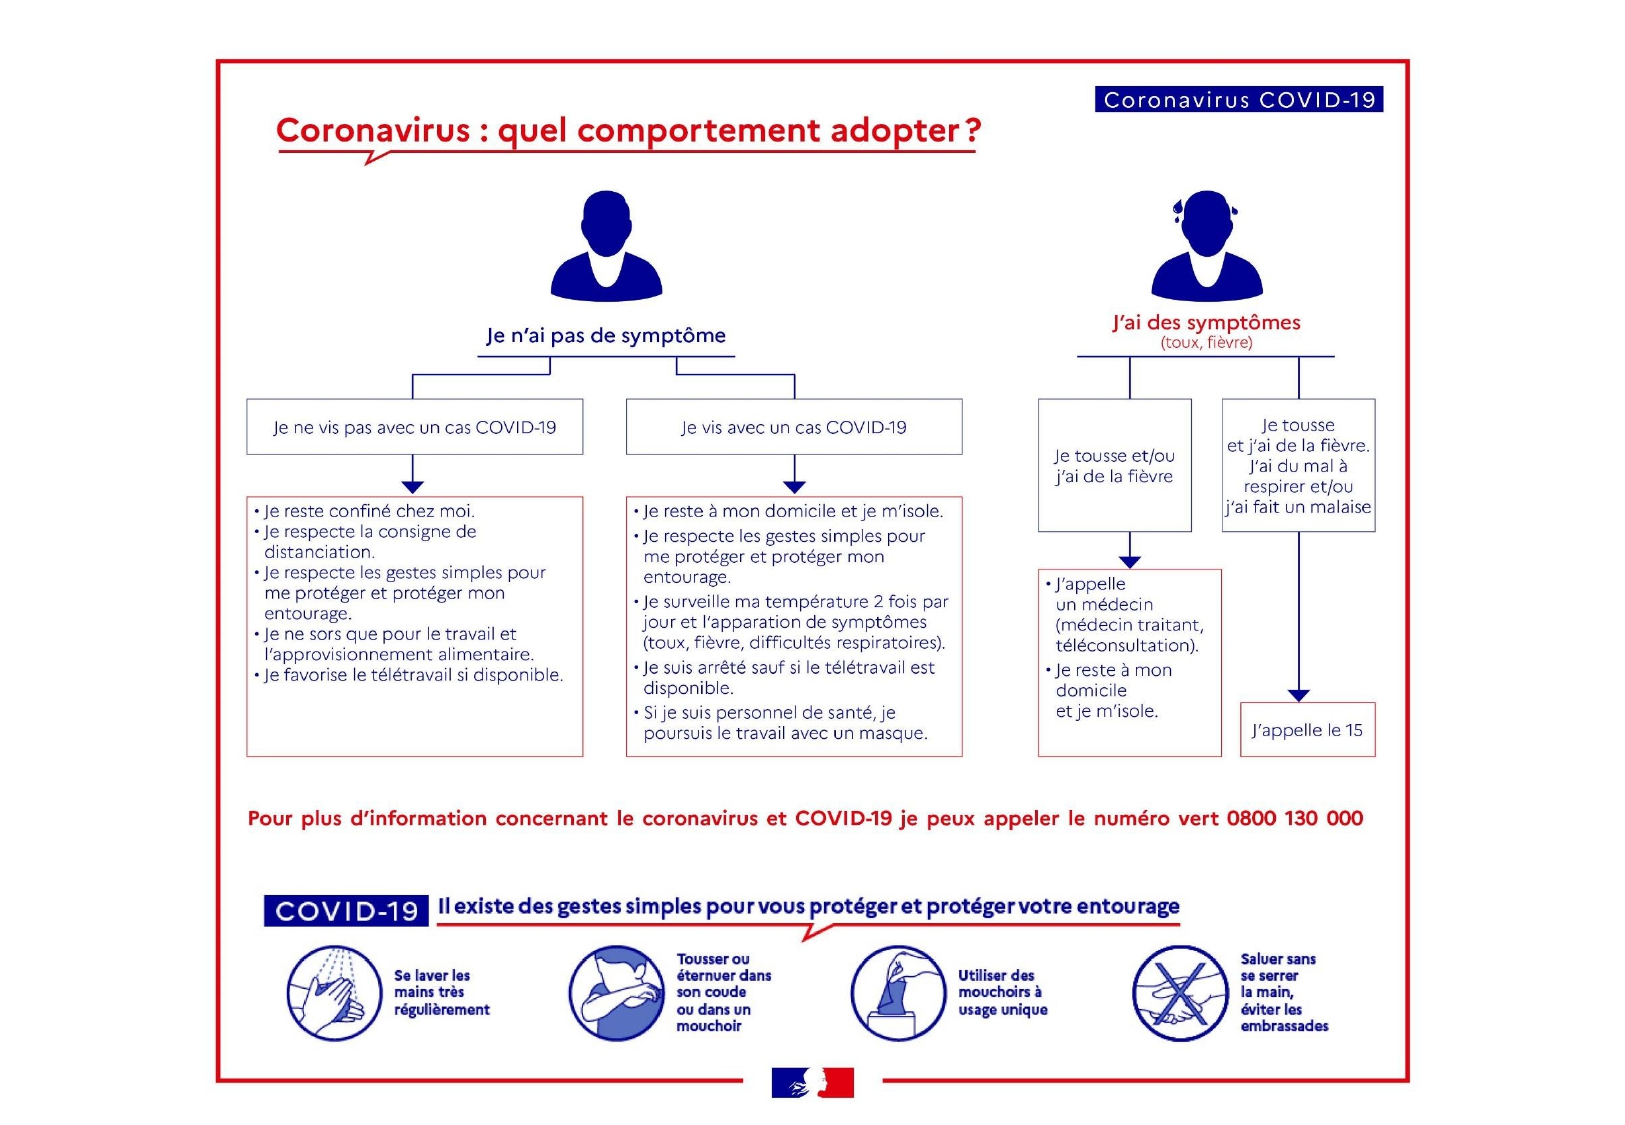 affiche_quel_comportement_adopter_page0001.jpg